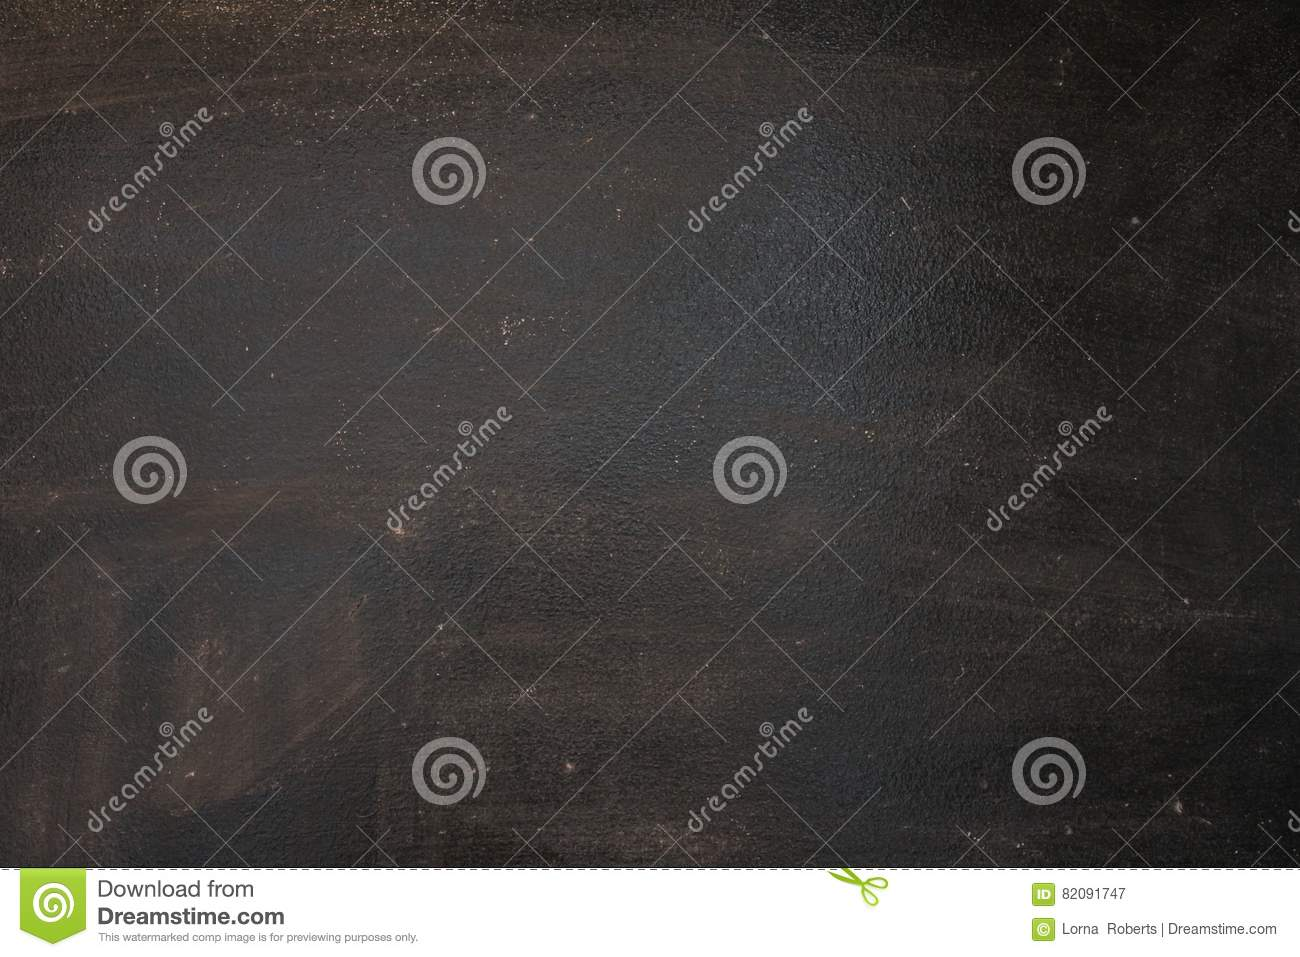 download close up of a black dirty chalkboard blank stock image image of dusty